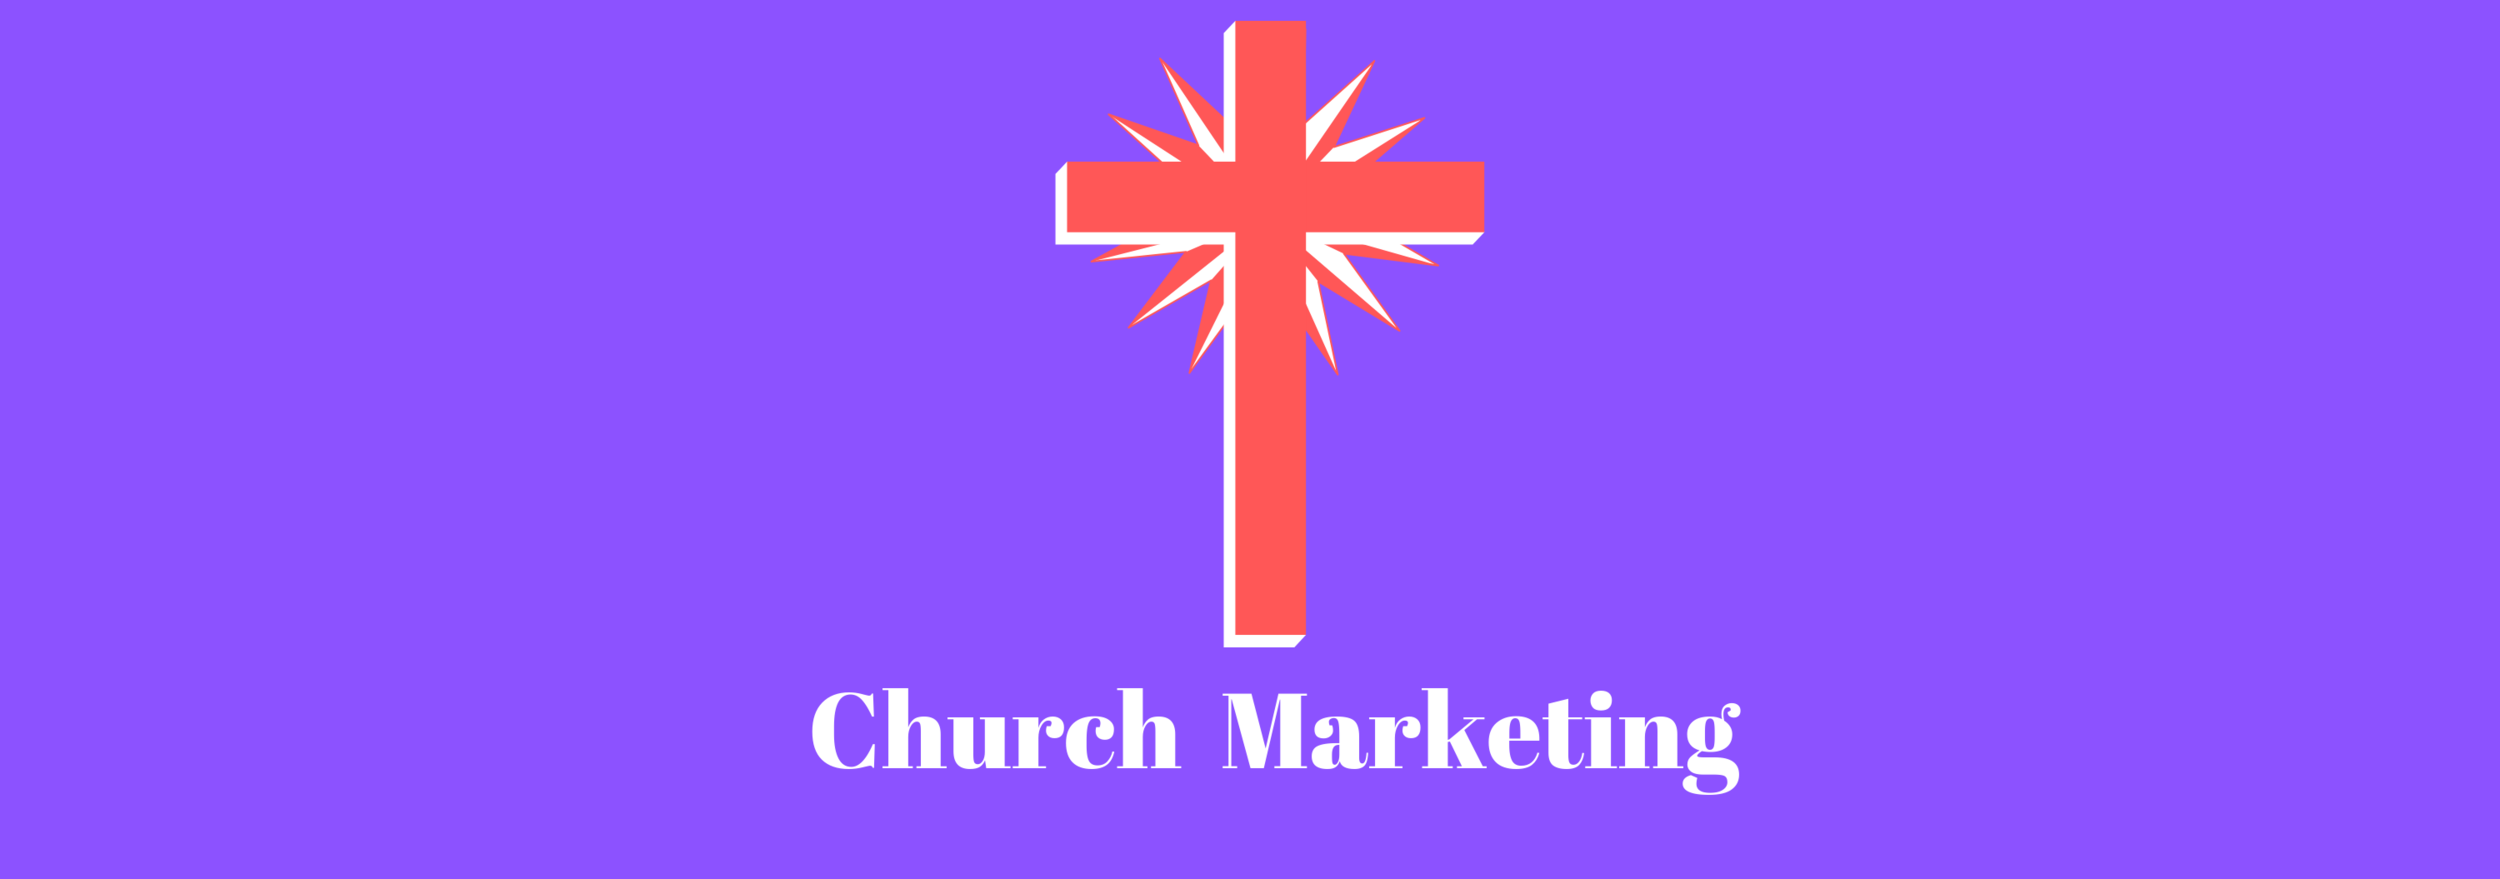 Church Marketing (1).png